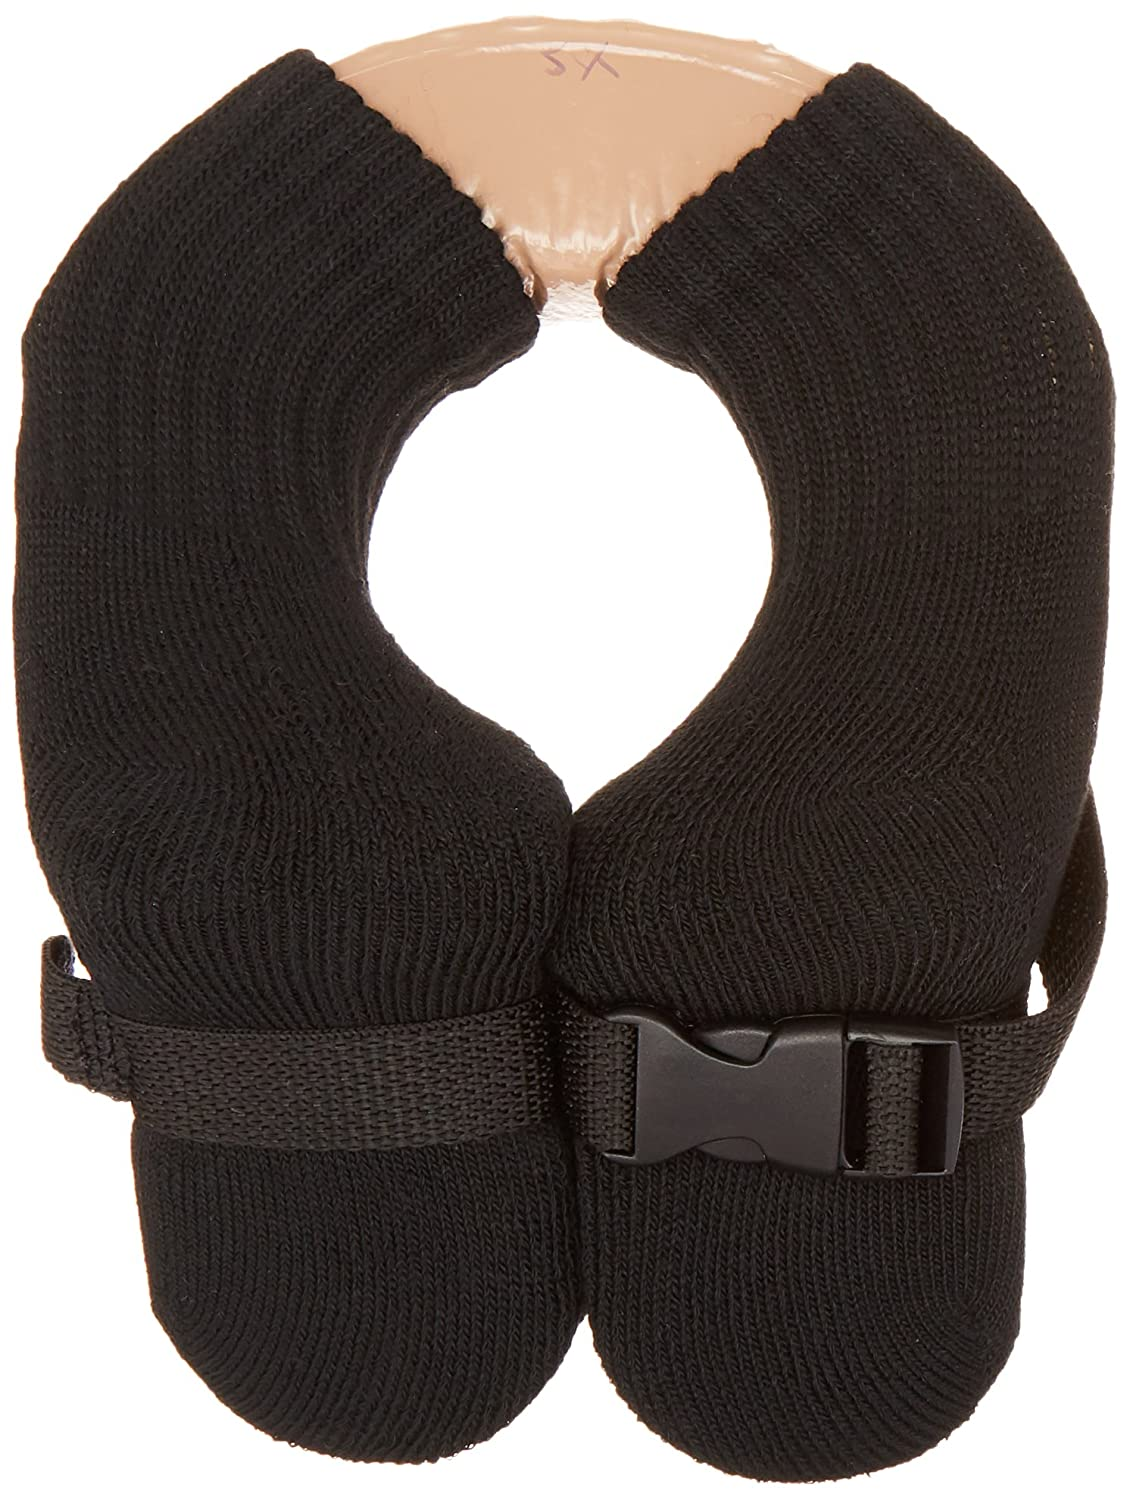 Danmar Products Hensinger Head Support, Black, X-Small